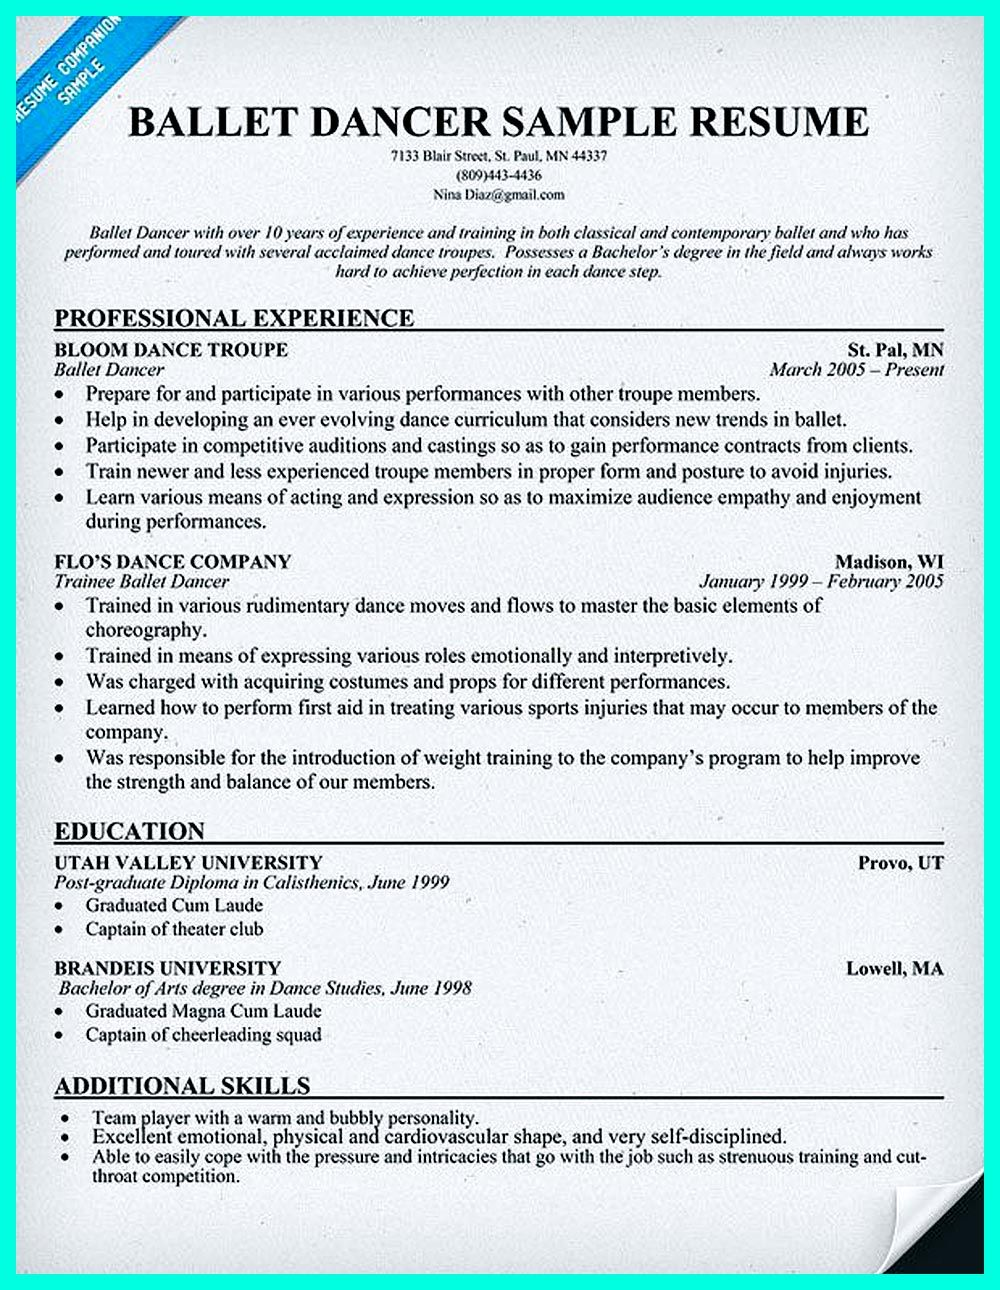 Dance Resume Can Be Used For Both Novice And Professional Dancer Most Job Of Dancer Has Minimum Requirement Dance Resume Artist Resume Teacher Resume Examples